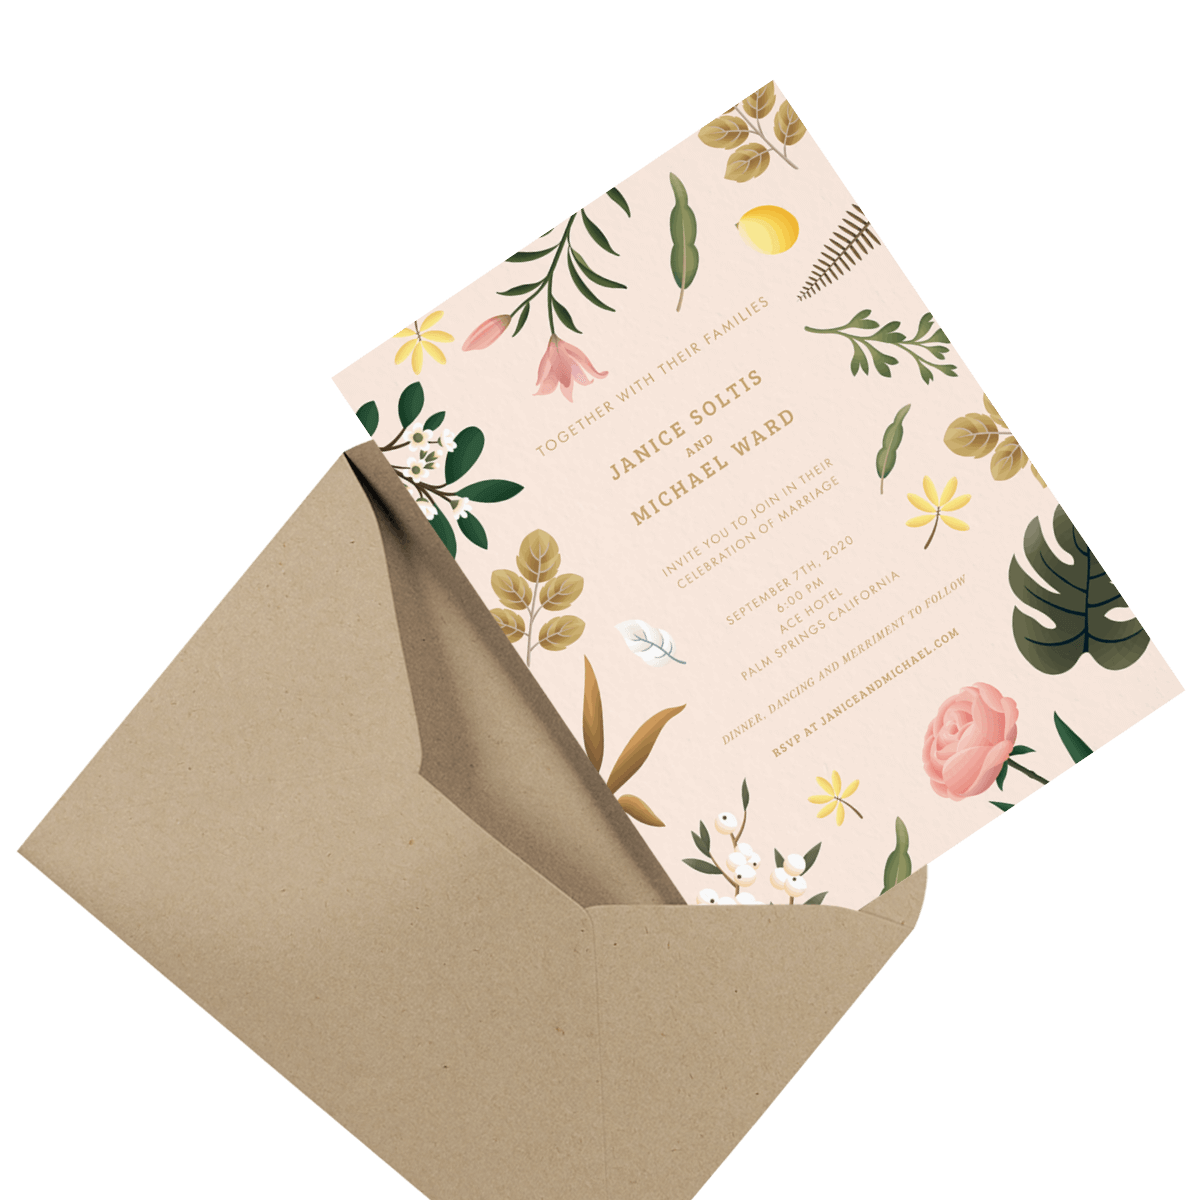 floral custom wedding invite in envelope